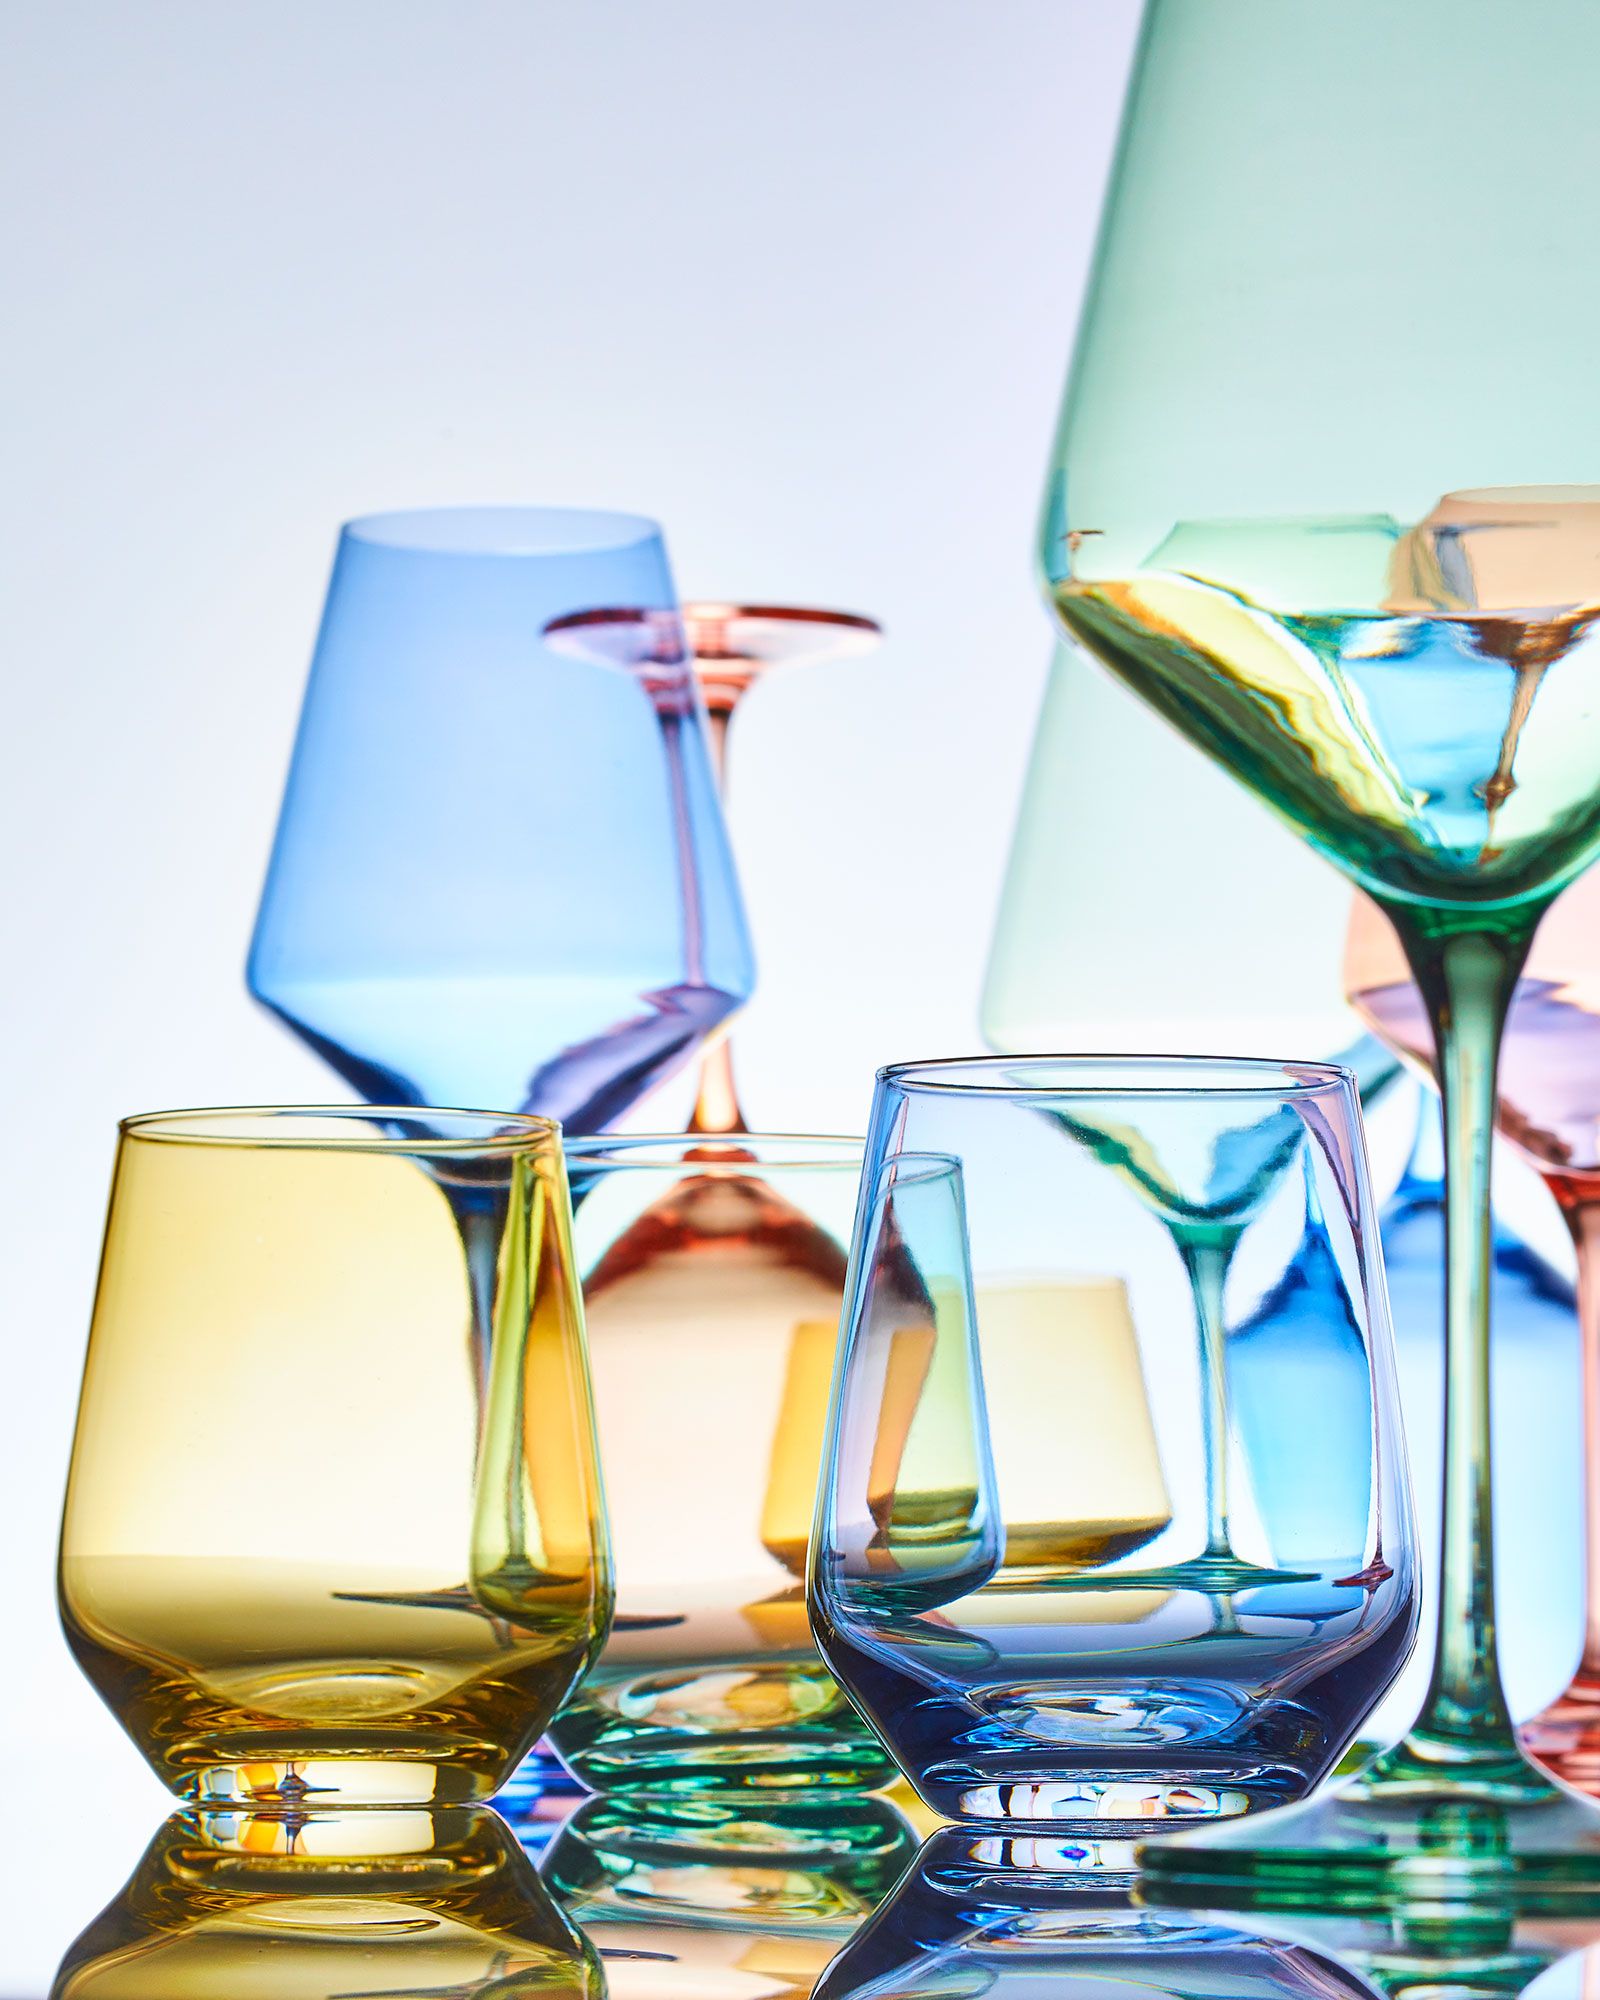 Coupes, wineglasses, and flutes from Estelle Colored Glass